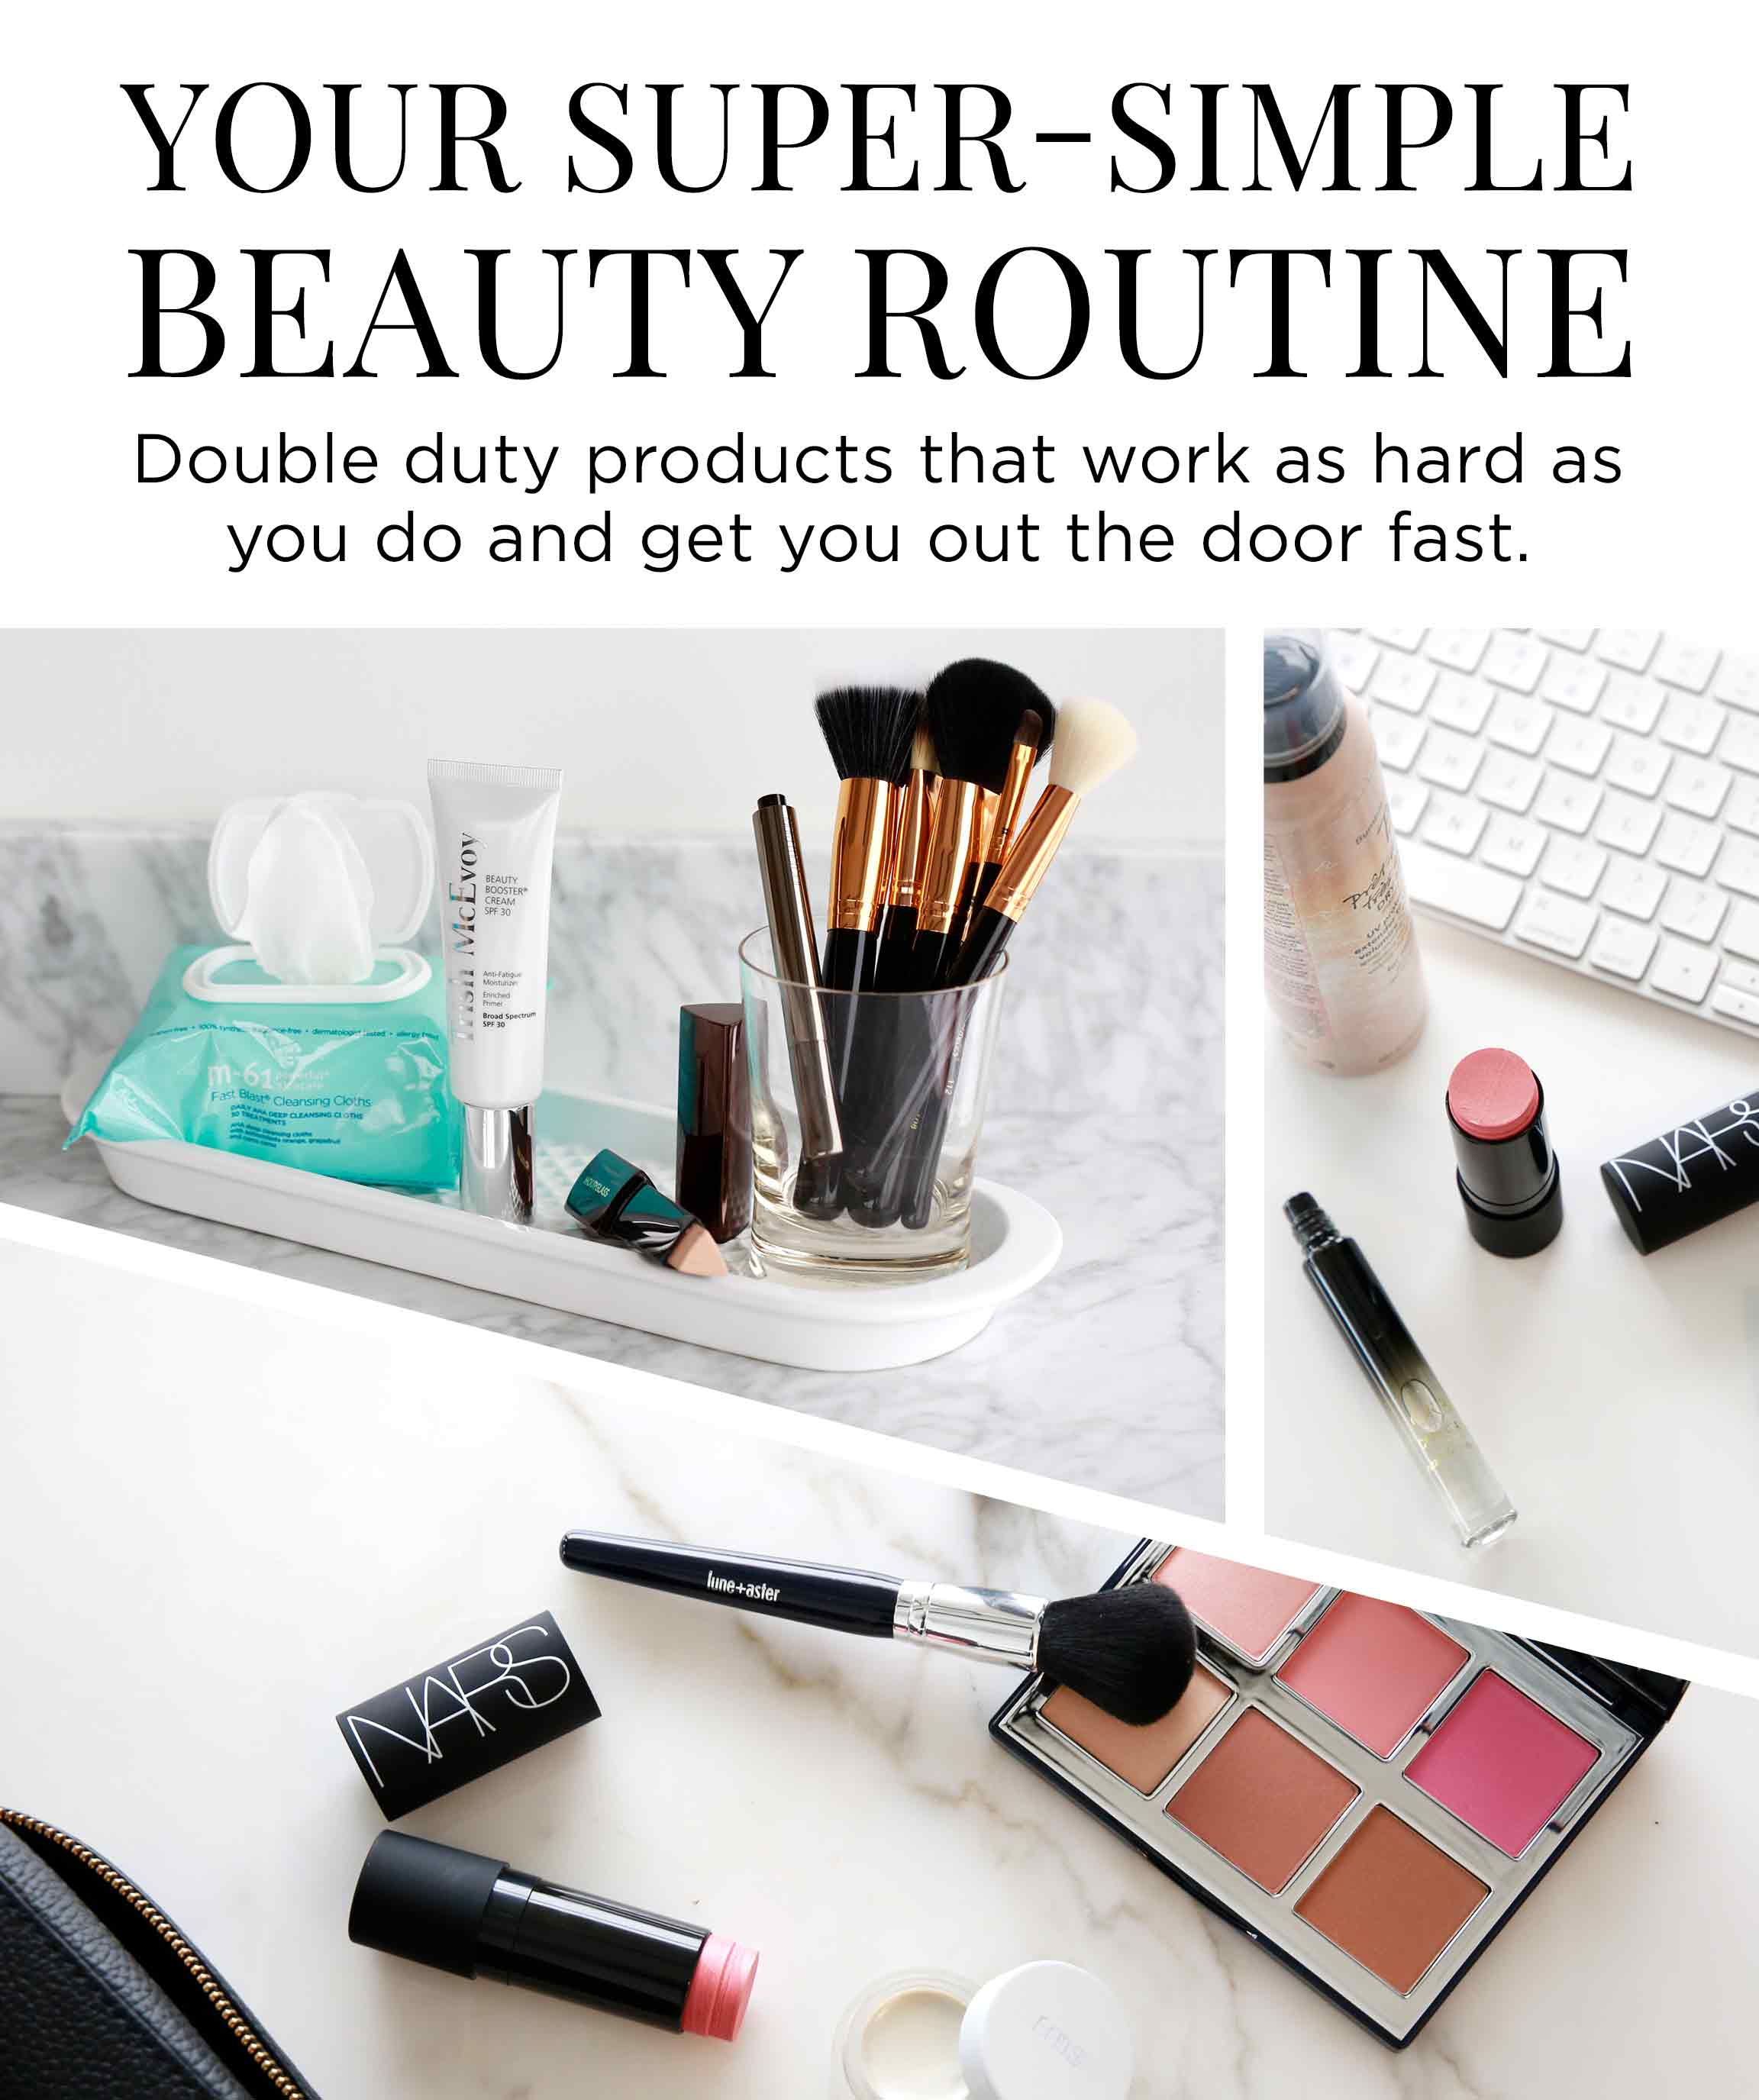 Your Super-Simple Beauty Routine